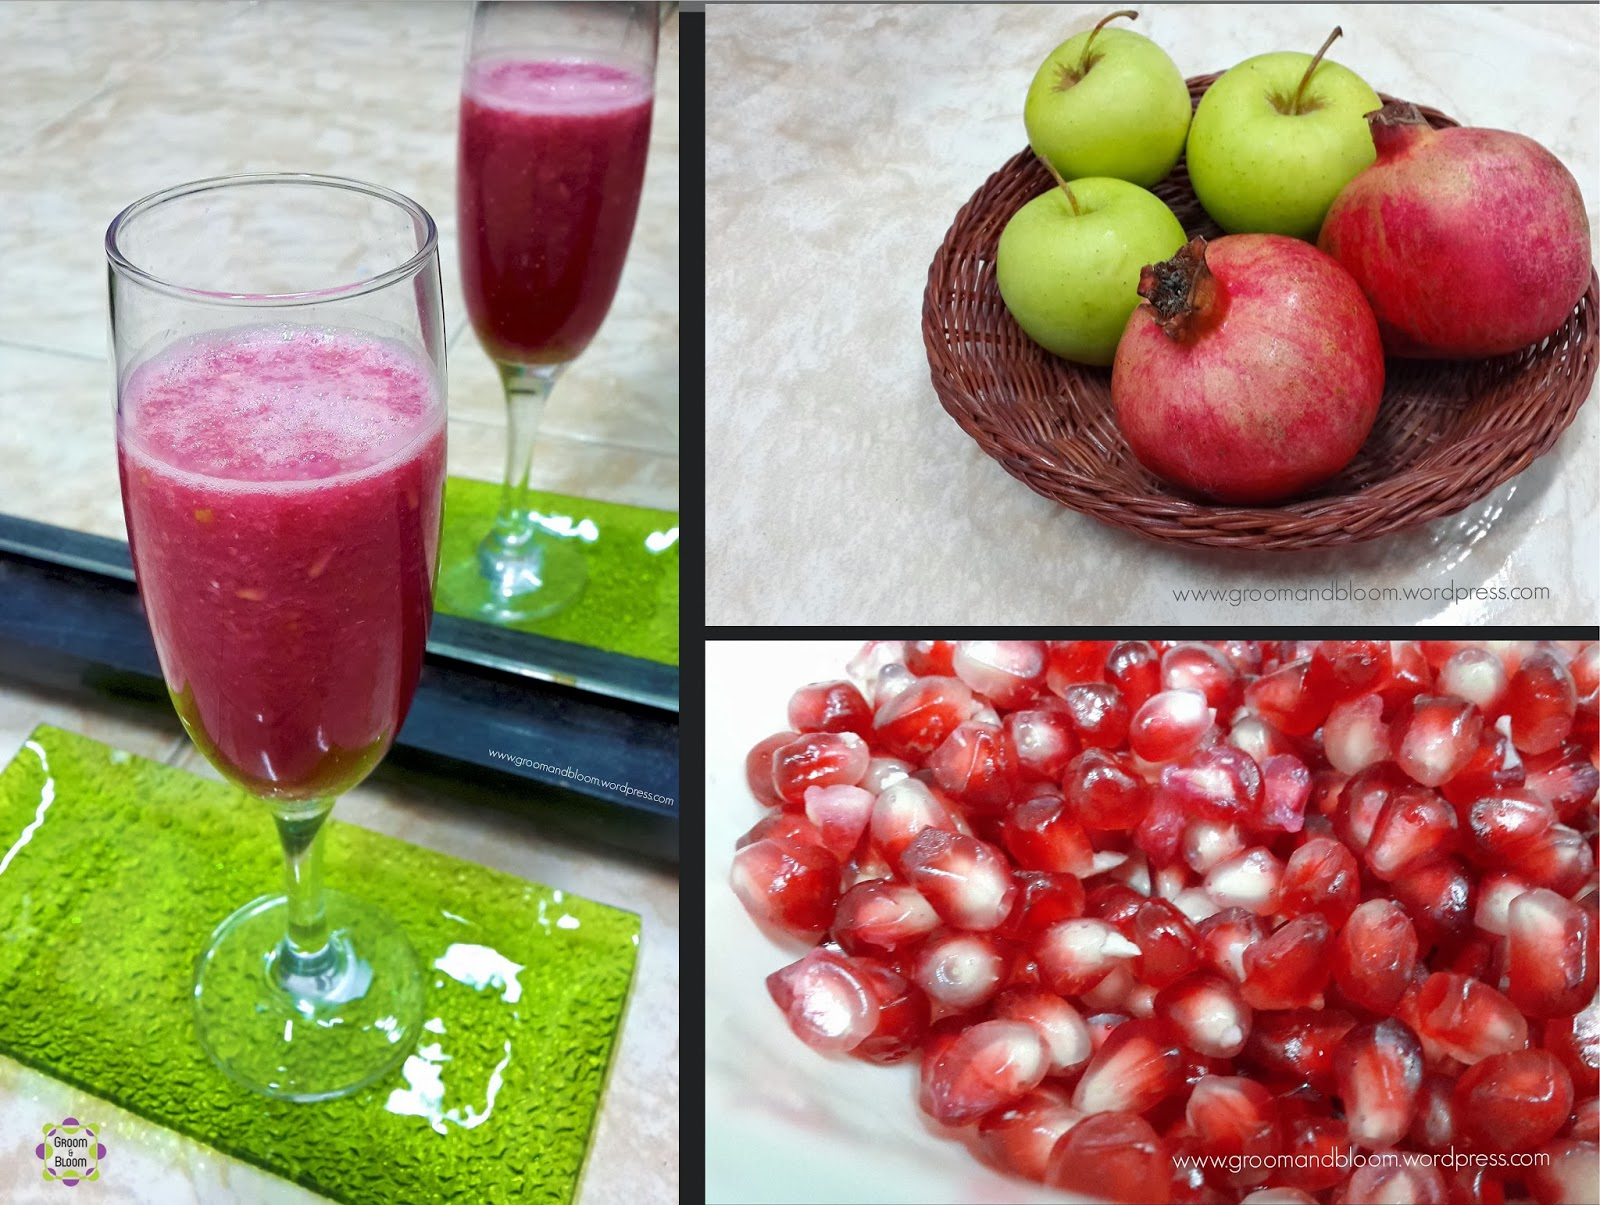 Can A Diabetic Drink Pomegranate Juice